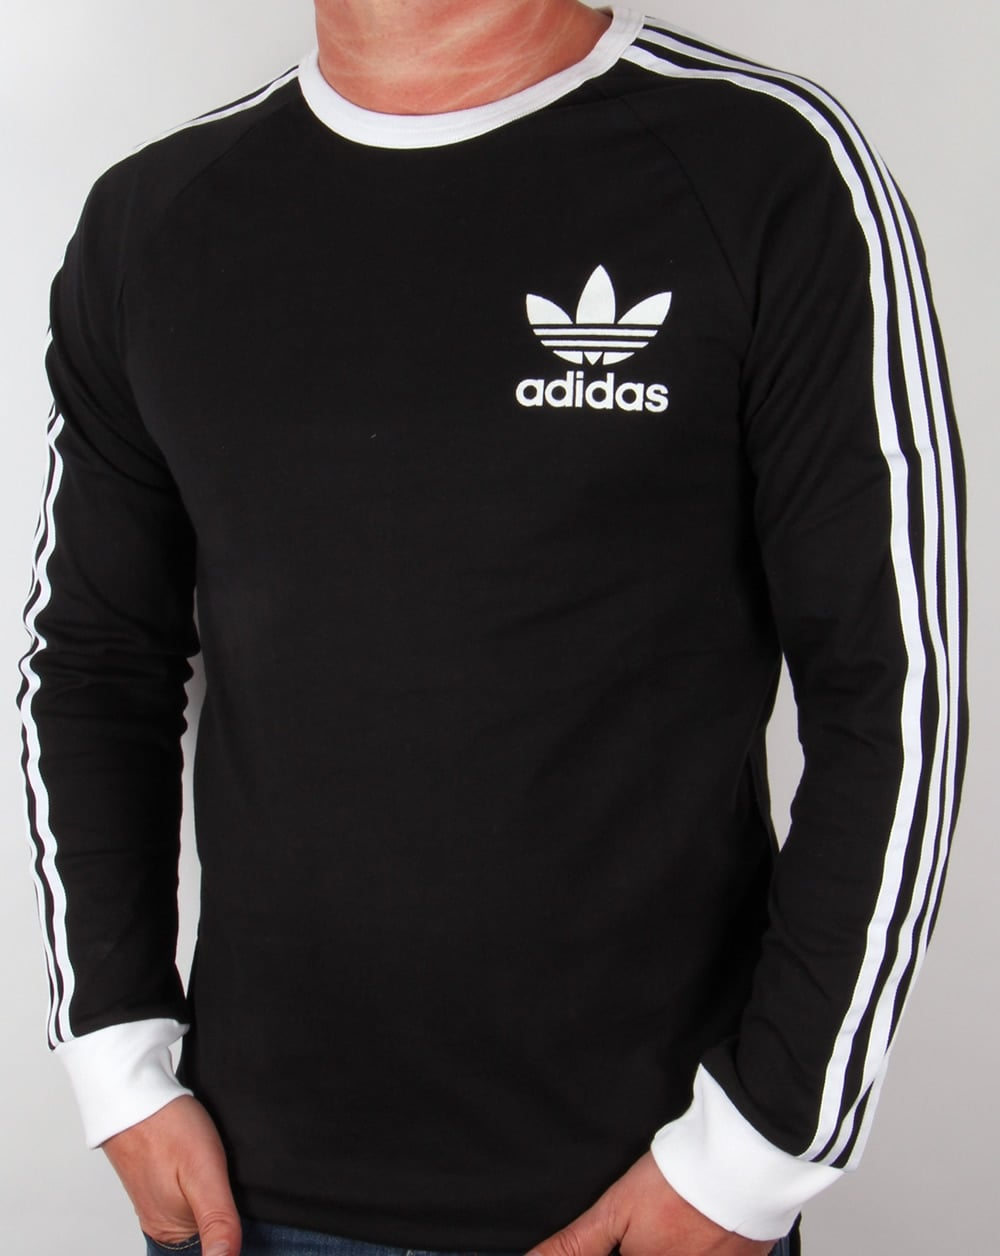 e810321630bf adidas Originals Boys Little Long Sleeve California Tee Black White Source  · Adidas Originals 3 Stripes Long Sleeve T shirt Black White